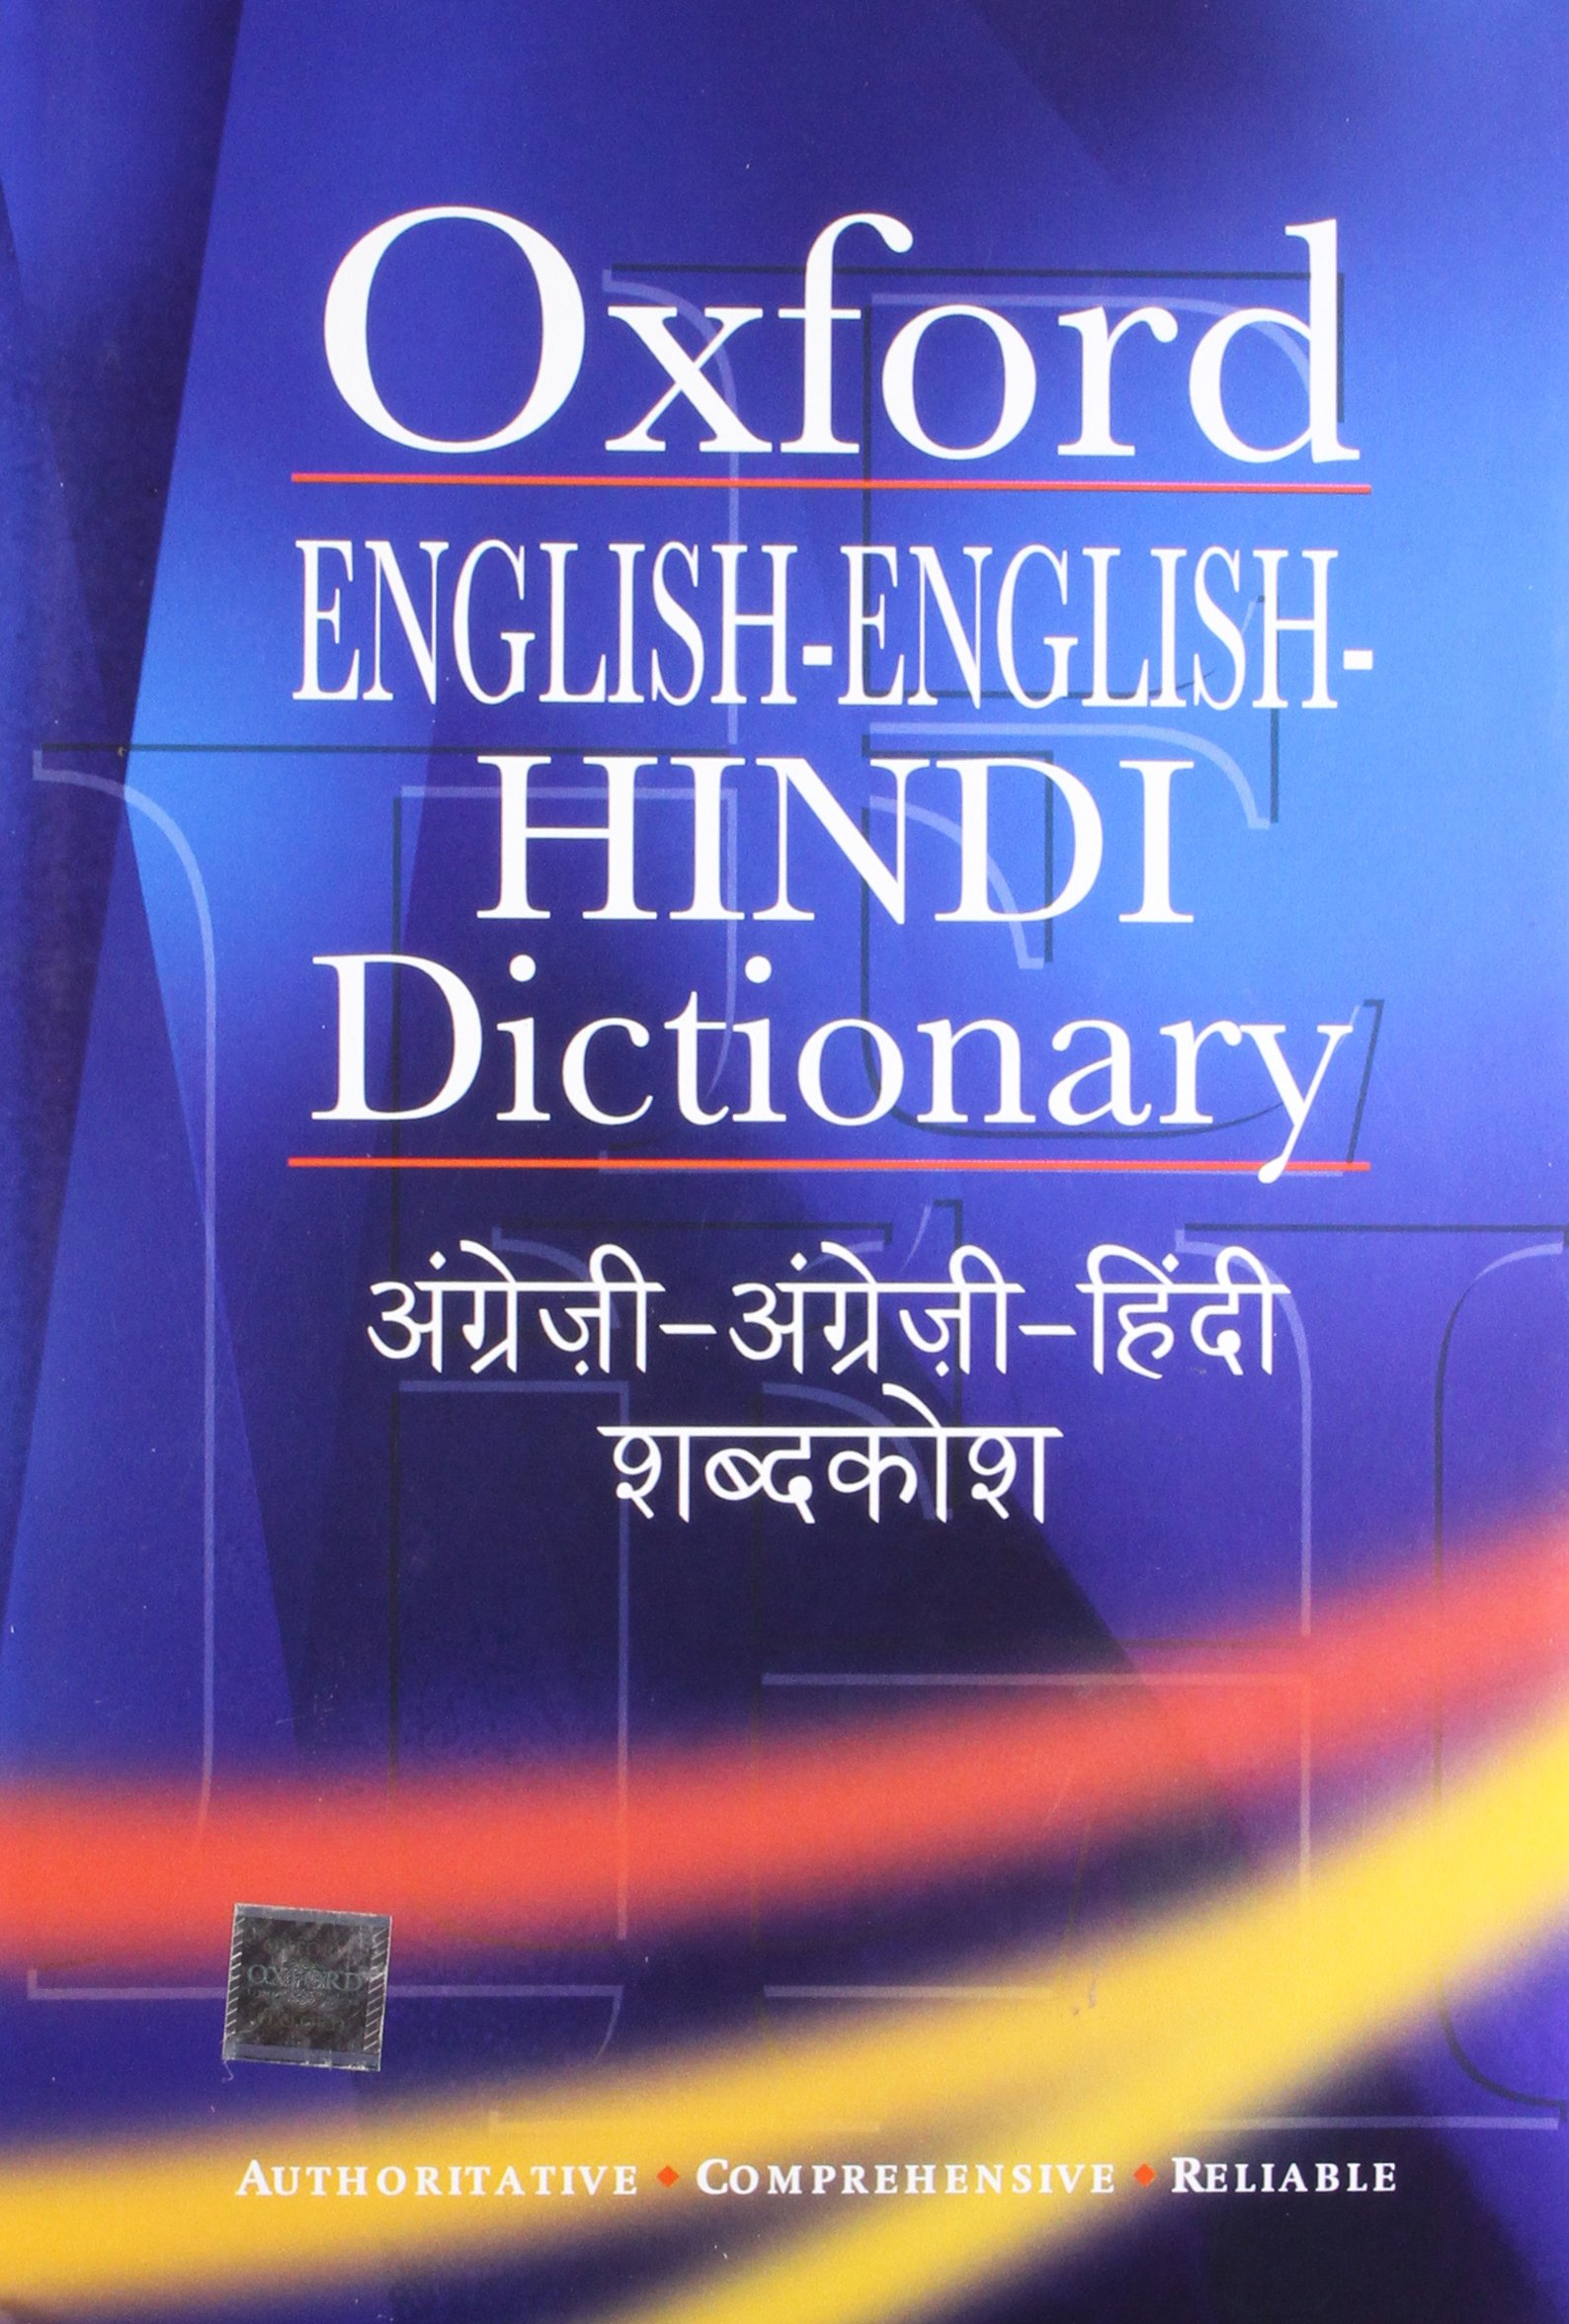 Buy Oxford English Hindi Dictionary Book Online At Low Prices In India